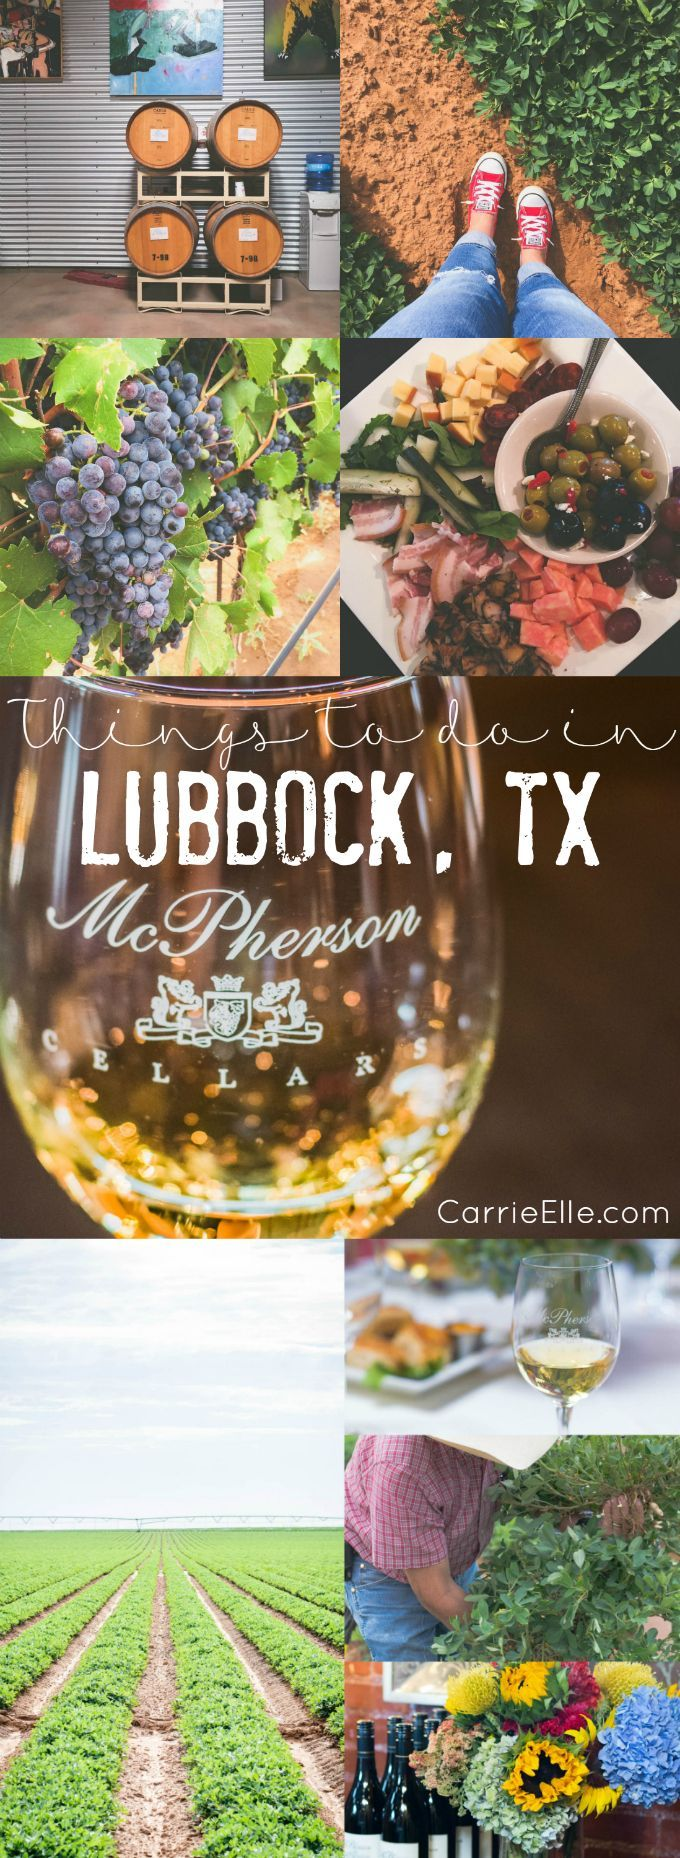 Hereu0026 A List Of Five Things To Do In Lubbock, Texas   From Fine Dining To  Wine Tasting To Exploring Local Art, Youu0026 Find Lubbock Is Full Of Fun  Things!